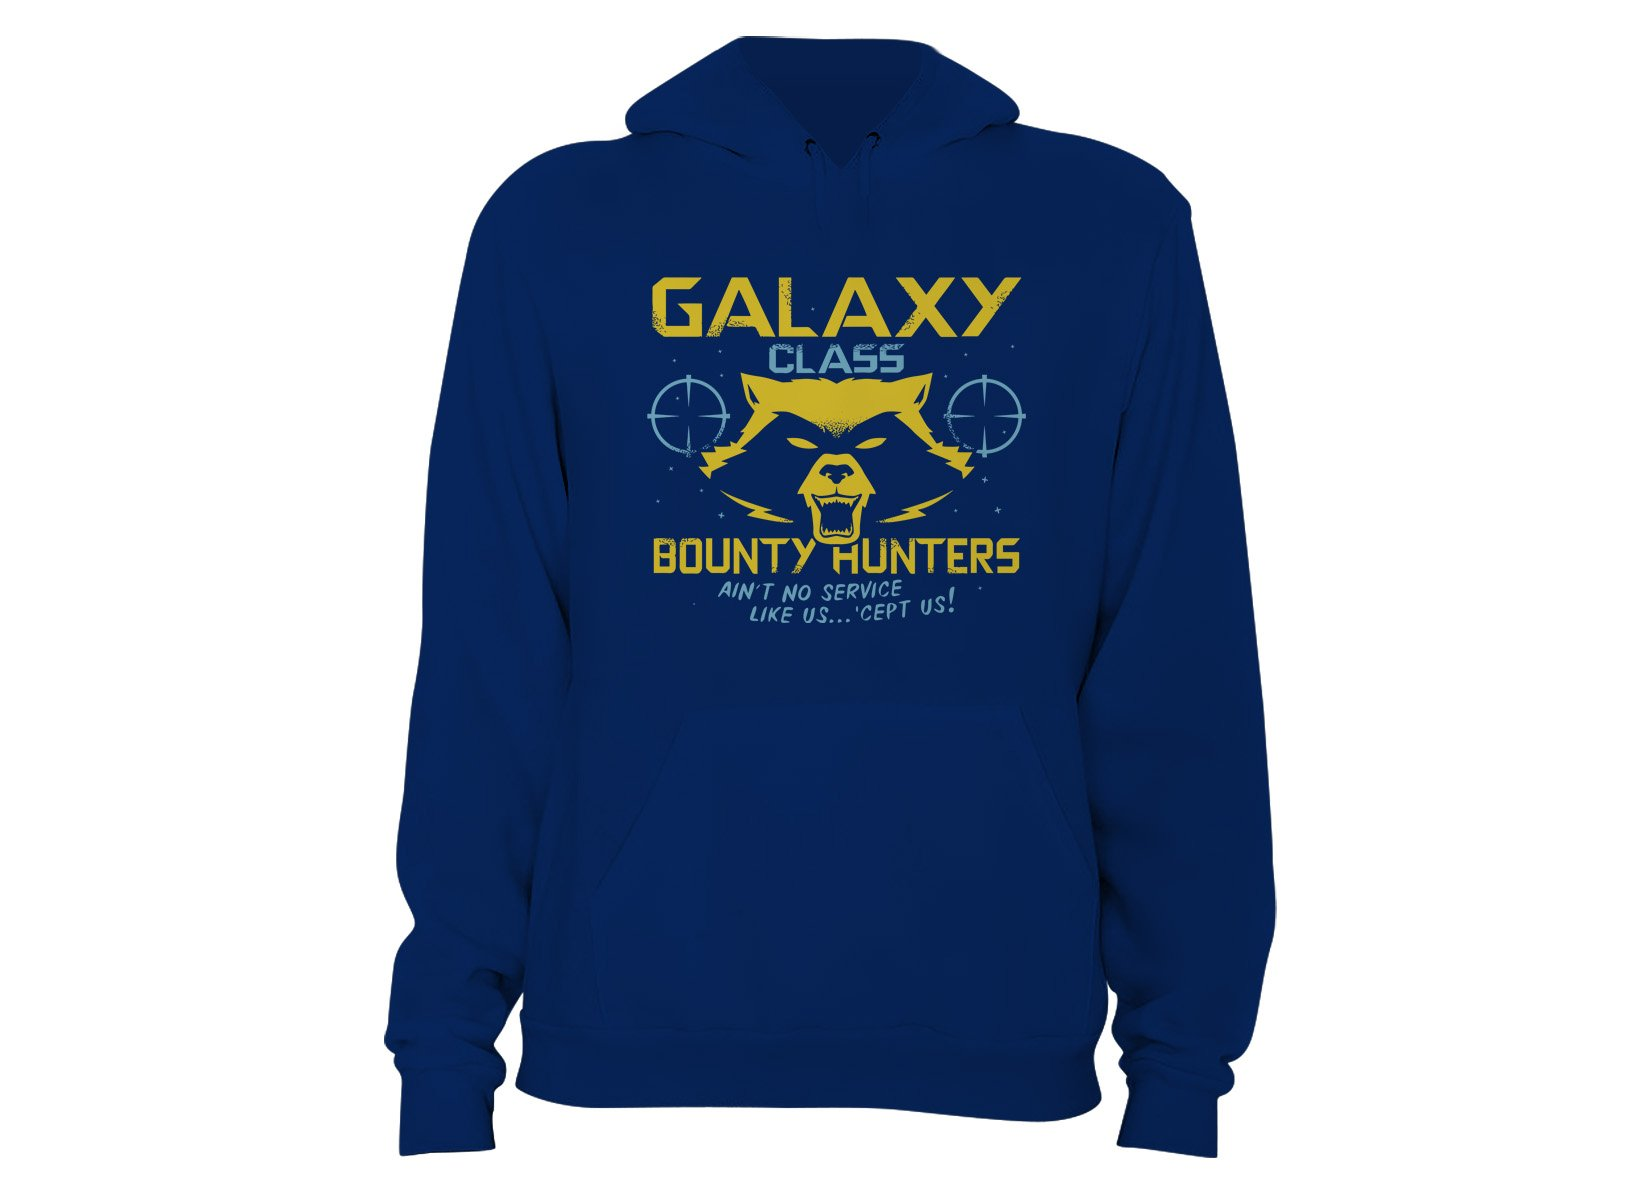 Galaxy Class Bounty Hunters on Hoodie